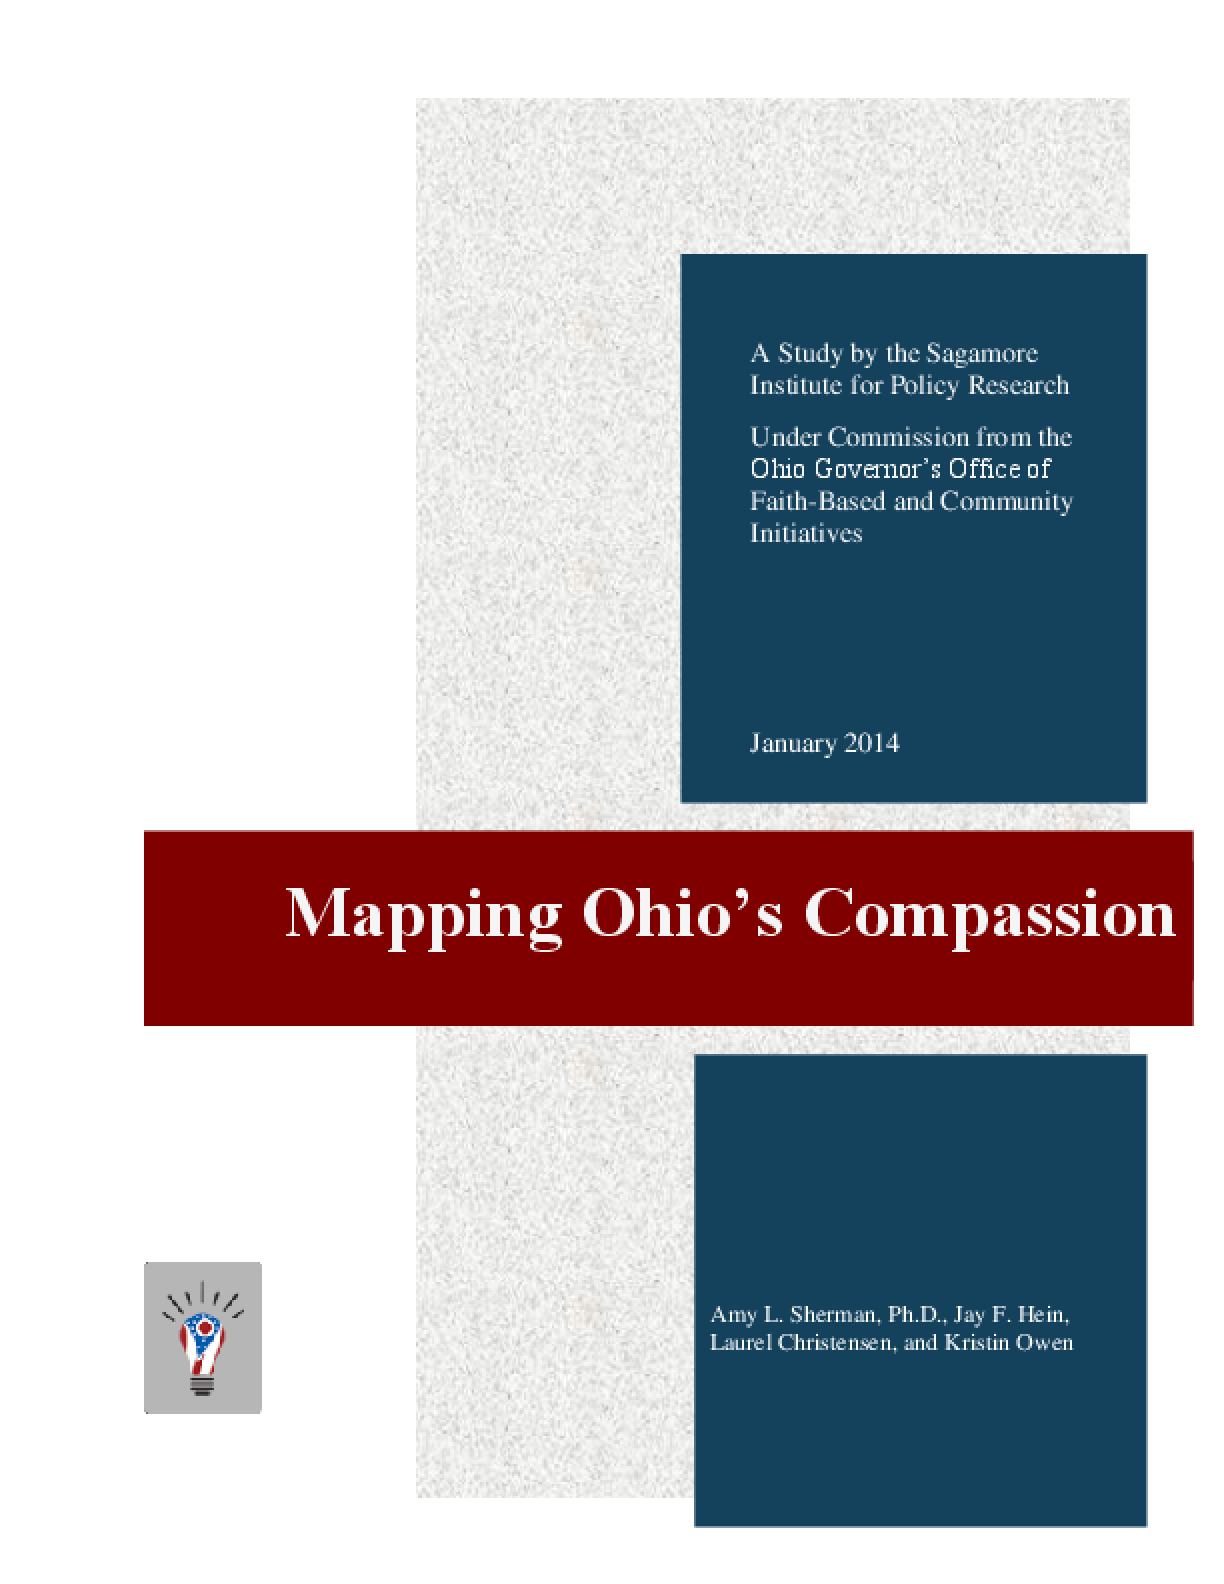 Mapping Ohio's Compassion